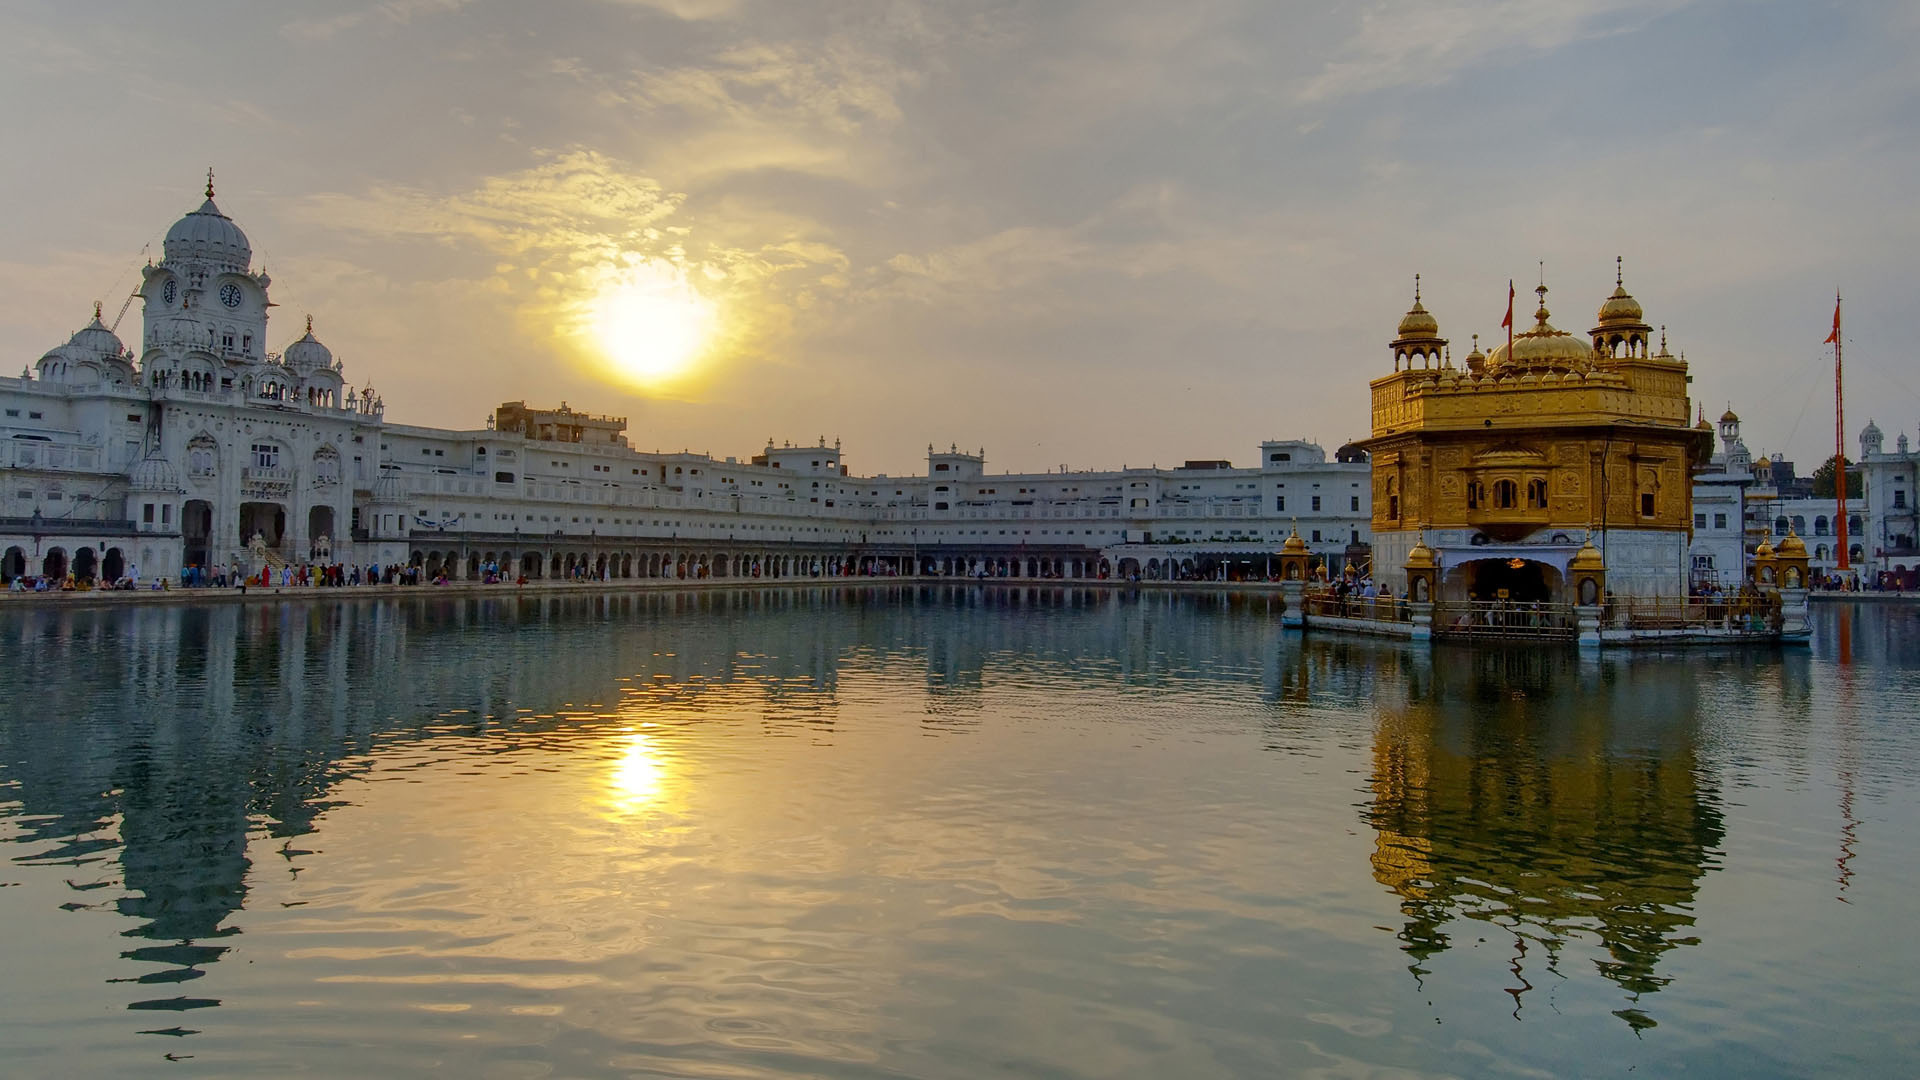 Amritsar Tourism and Travel Guide